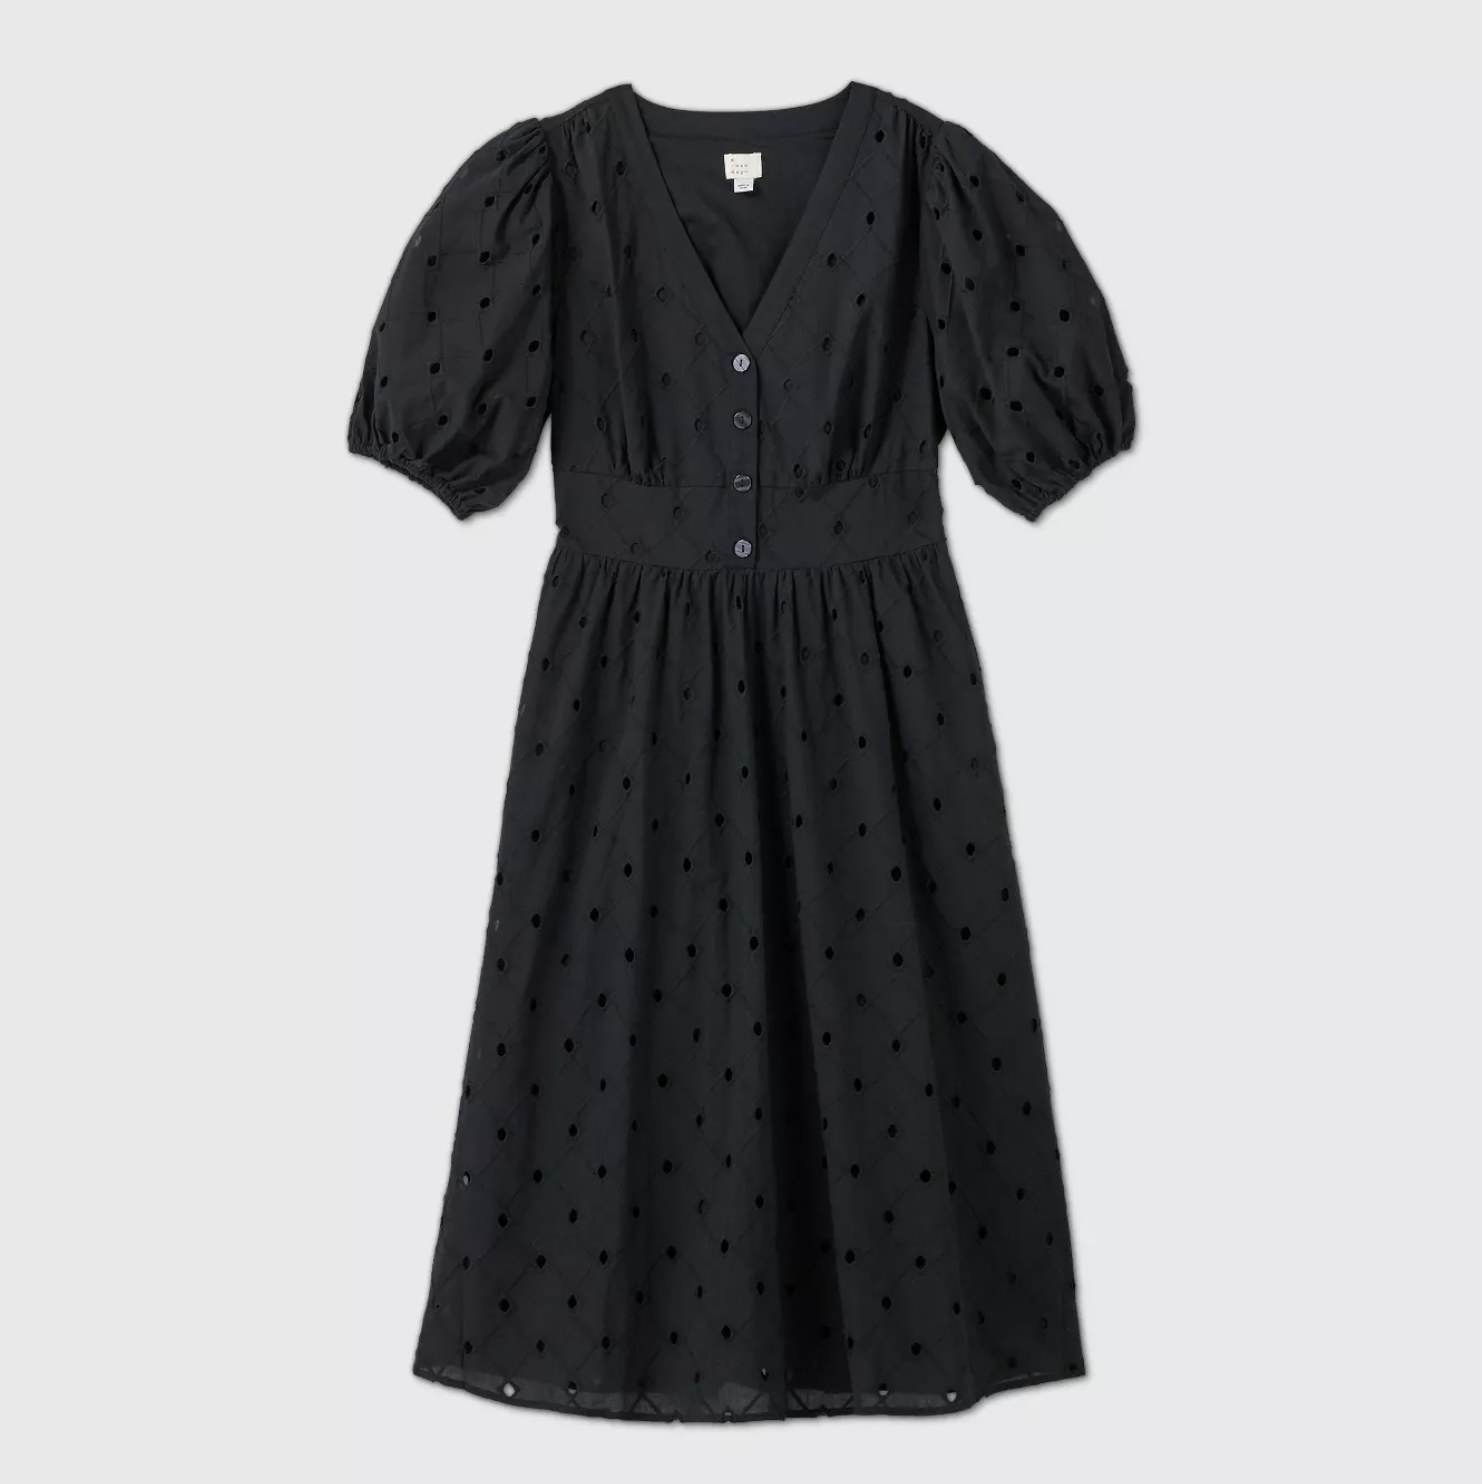 A black eyelet dress with four buttons in the front